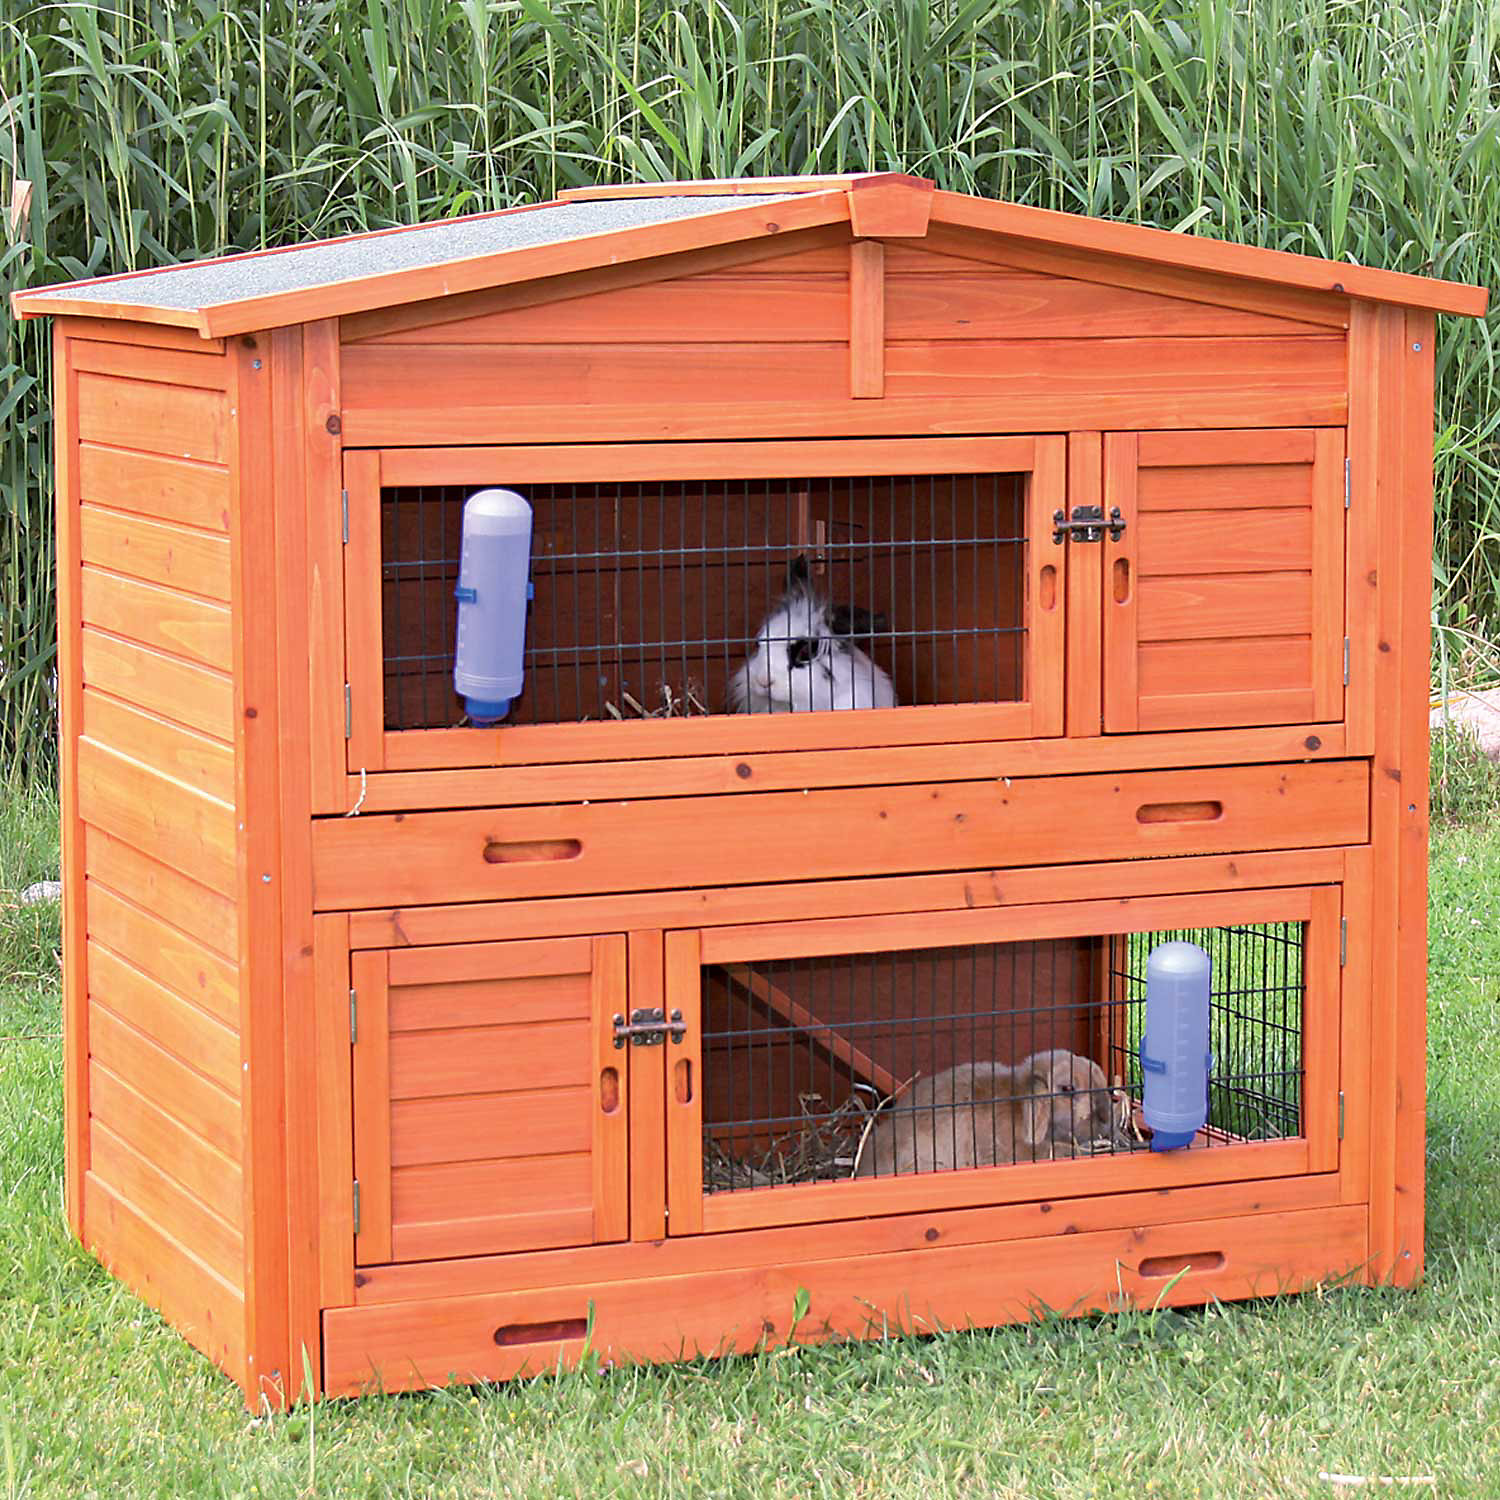 Trixie Natura Two Story Peaked Roof Rabbit Hutch